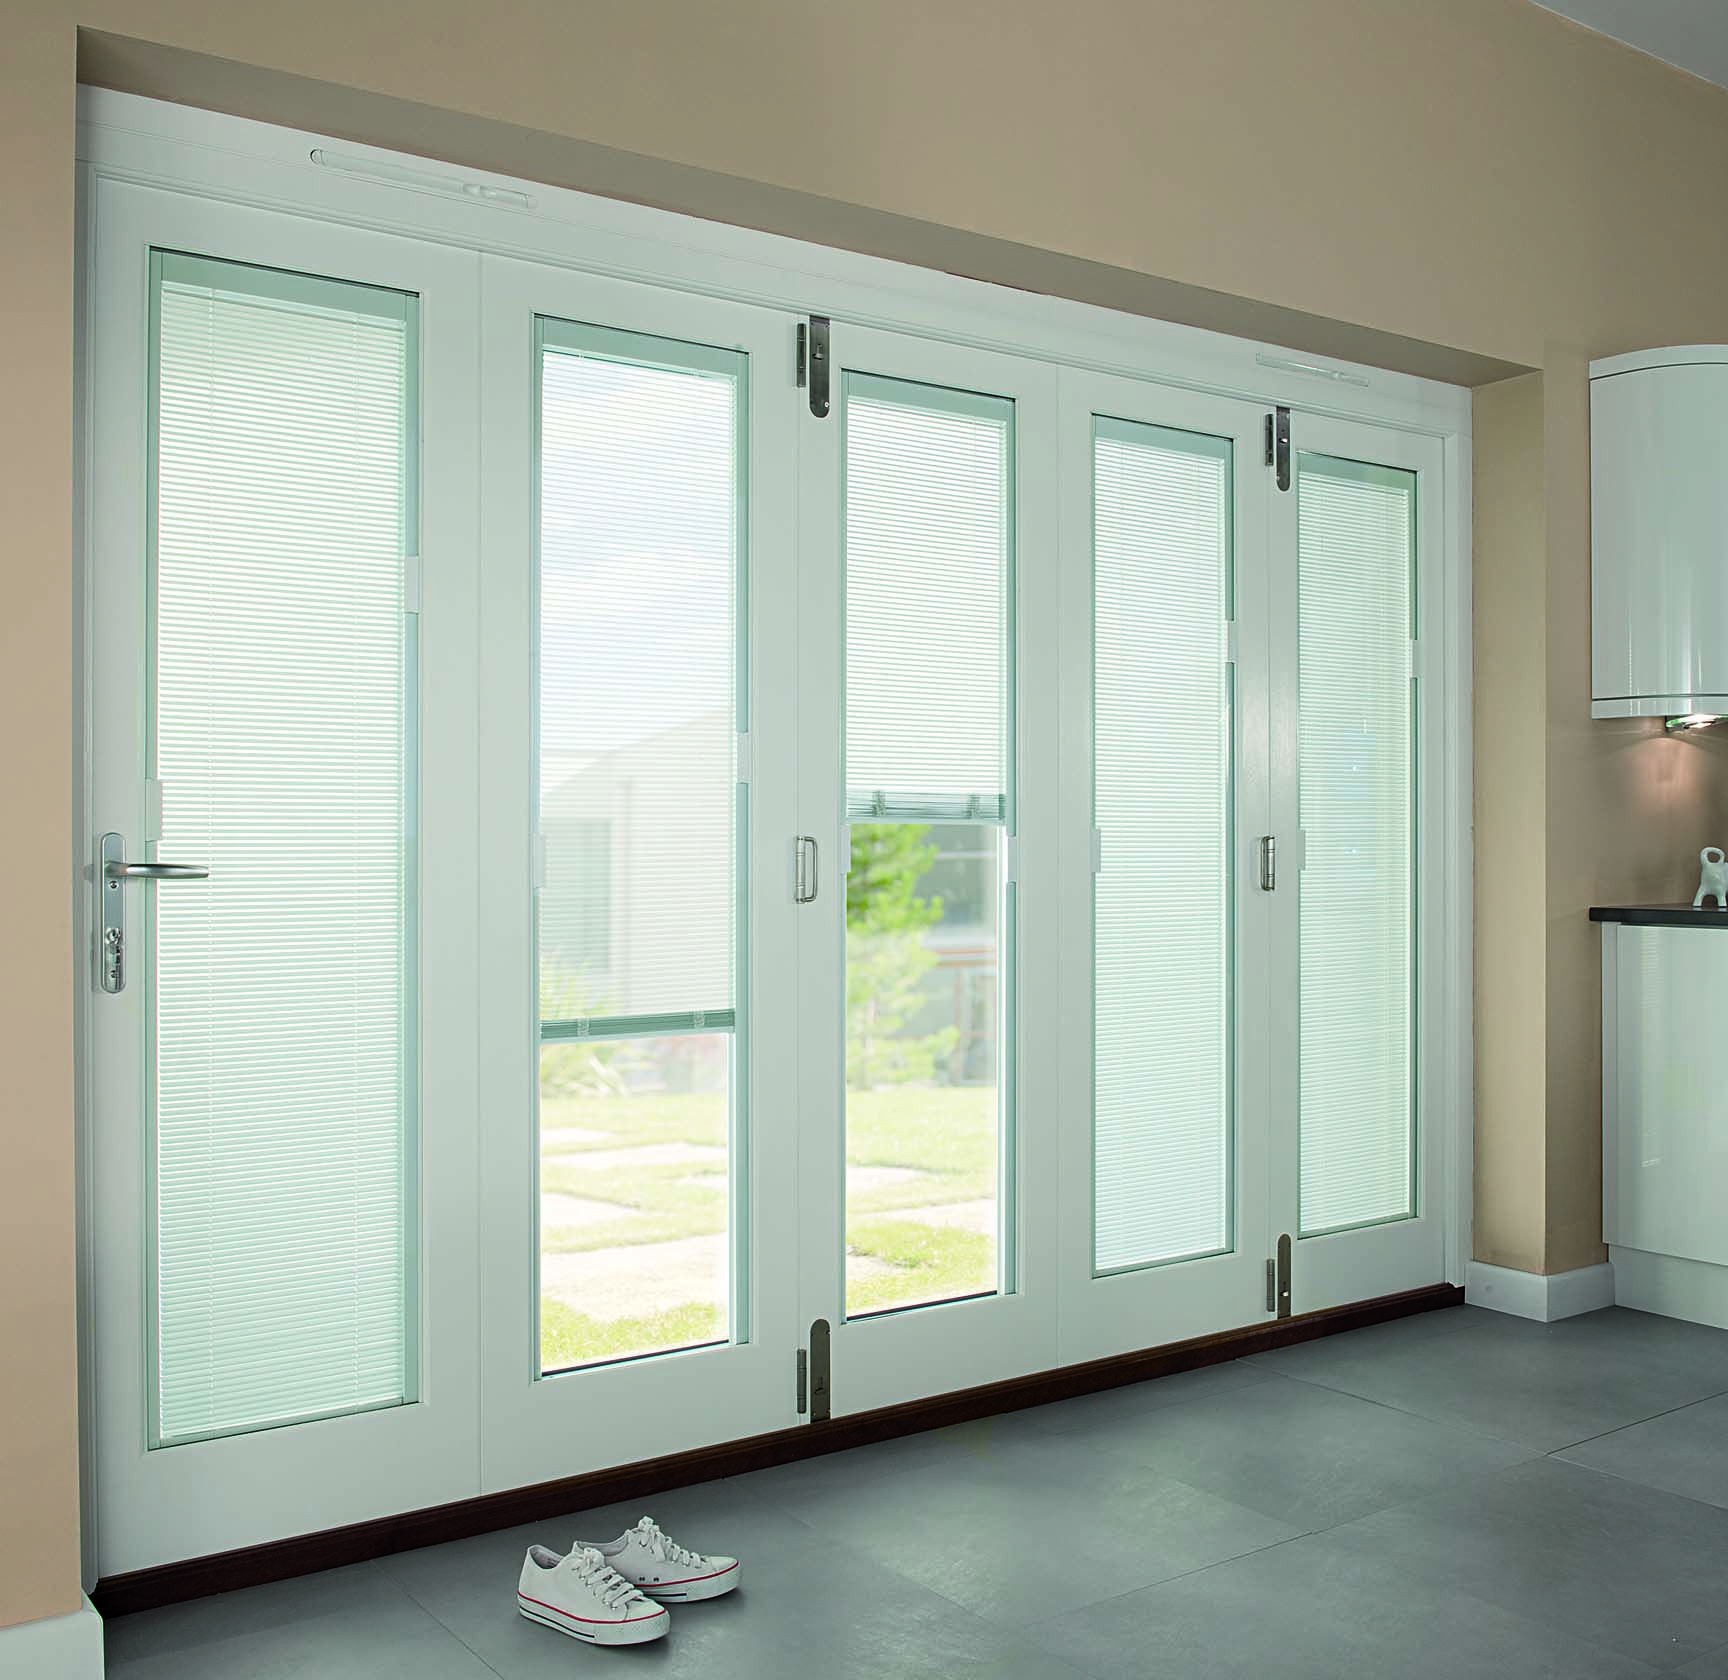 Exterior interior modern white wooden patio doors with internal exterior interior modern white wooden patio doors with internal rolling blinds patio doors with built in rubansaba